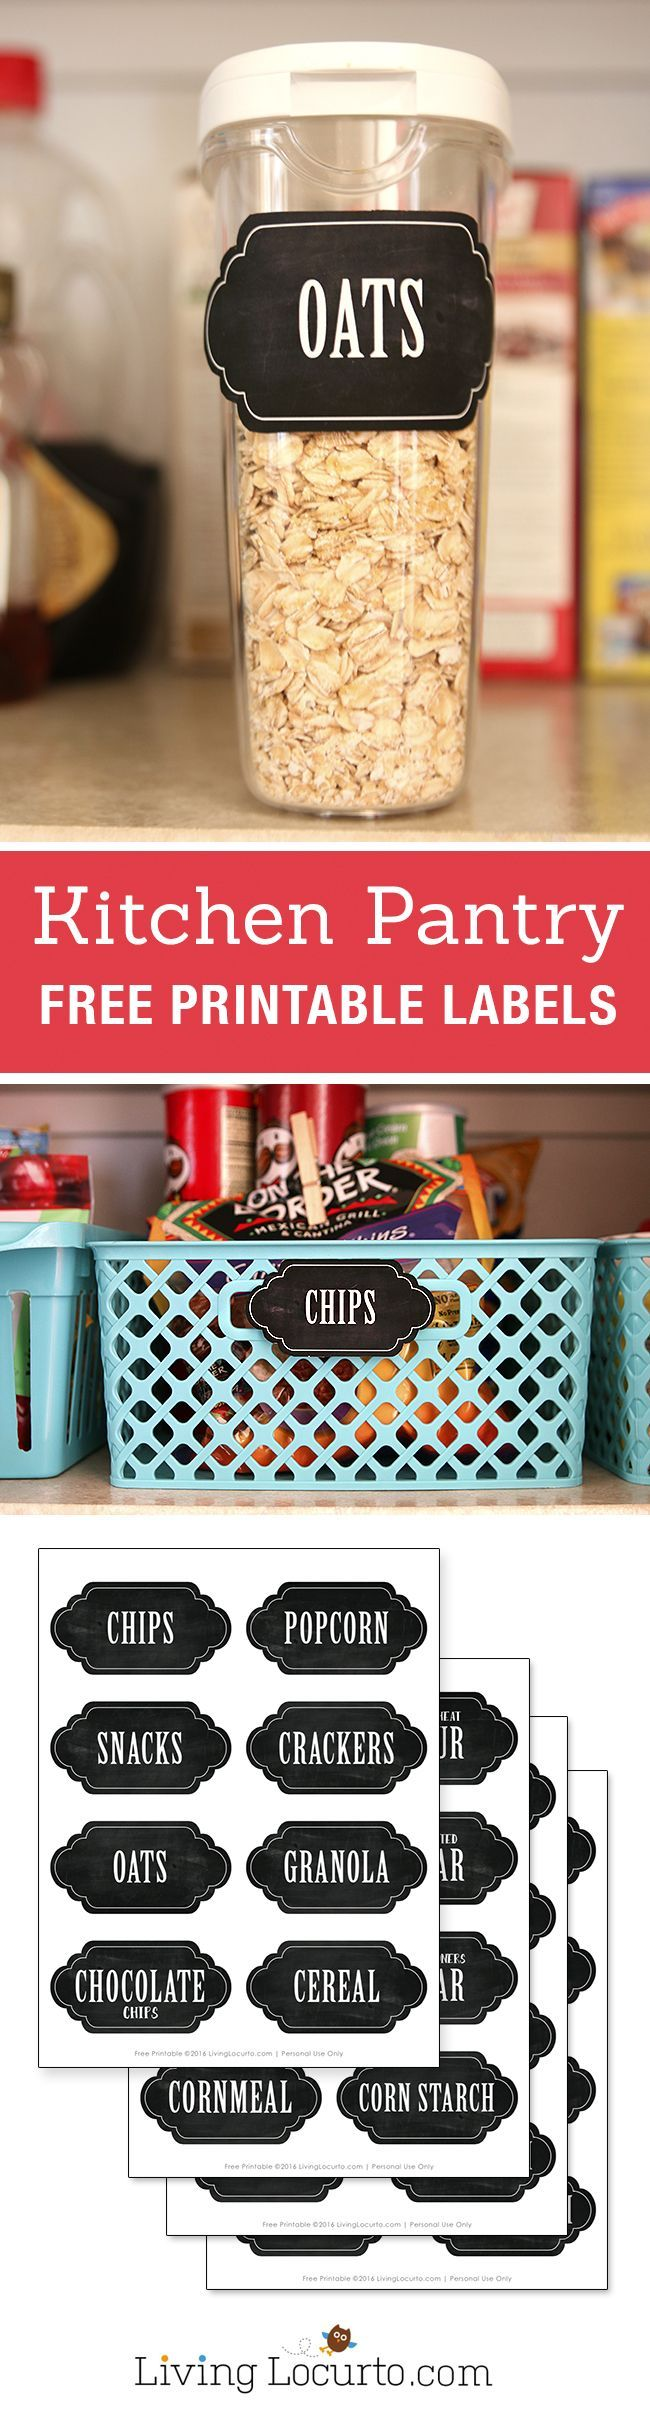 makeover your kitchen pantry inspiring kitchen pantry ideas with free printable chalkboard labels